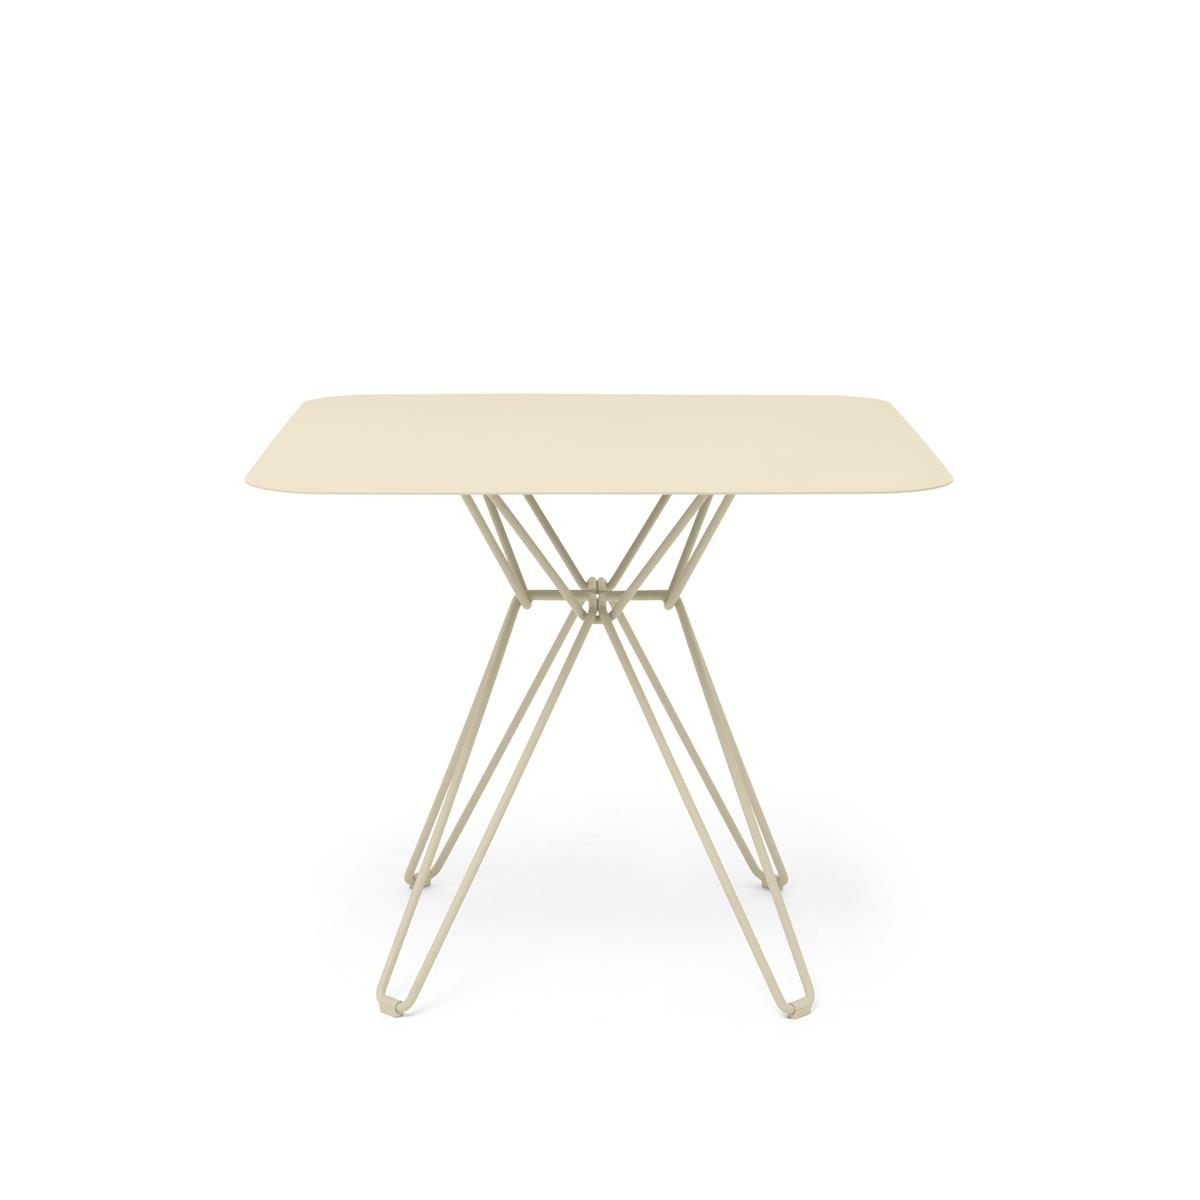 Tio Dining Table 85 x 85 x H72 cm - Ivory